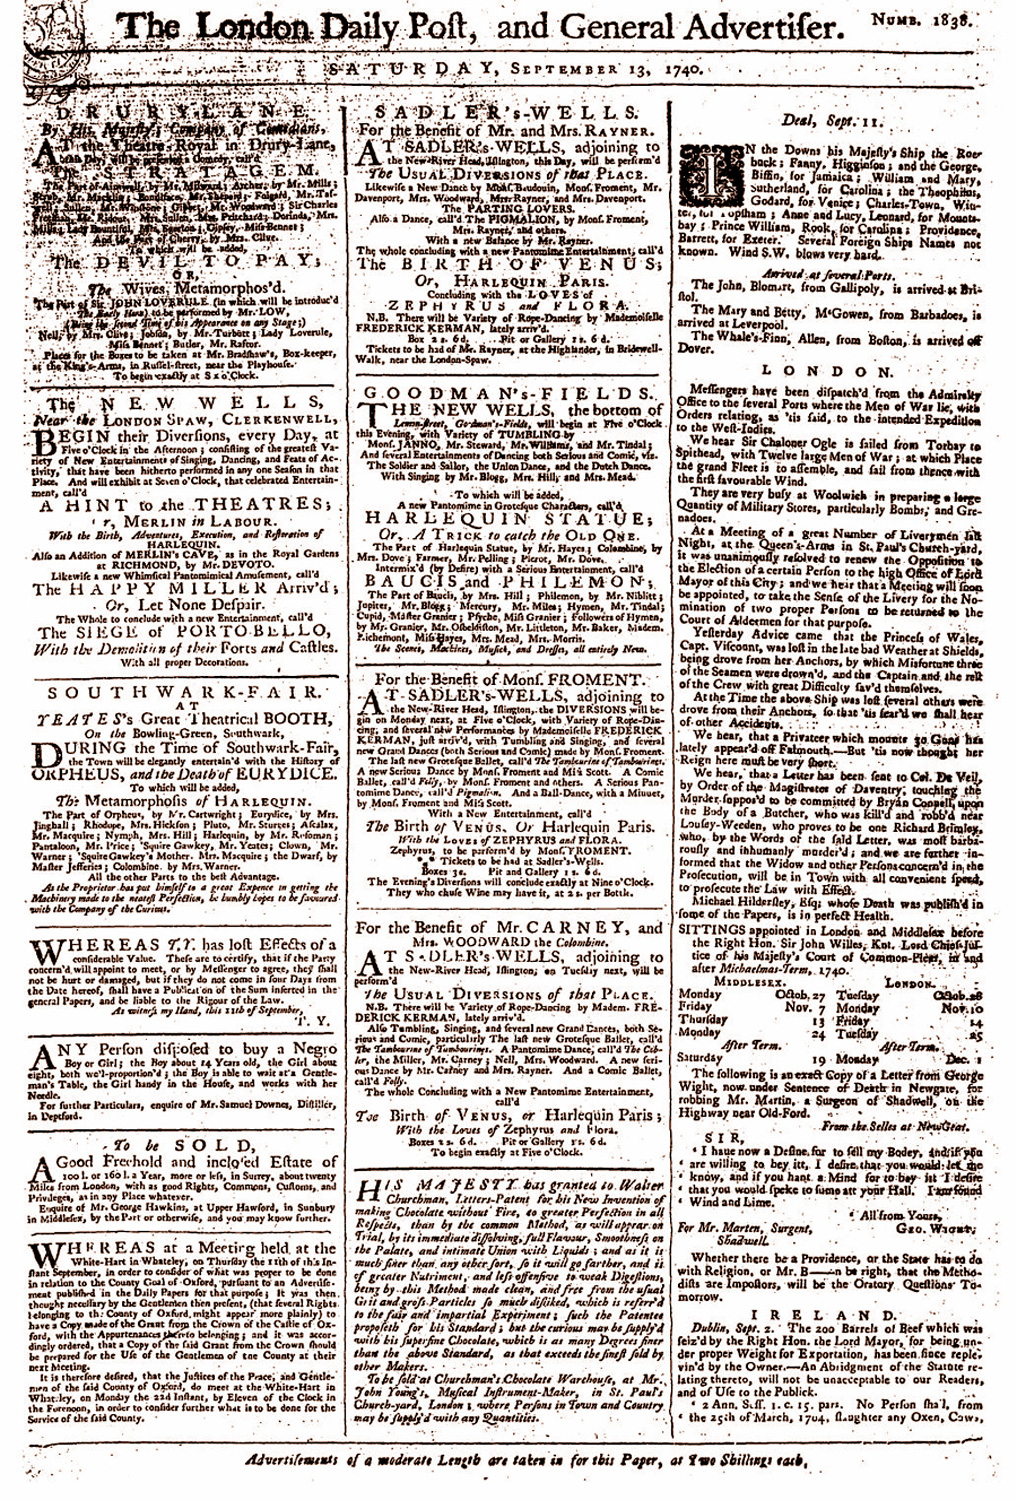 Advertisement in the London Daily Post, 'Any persons disposed to buy a Negro', 1740